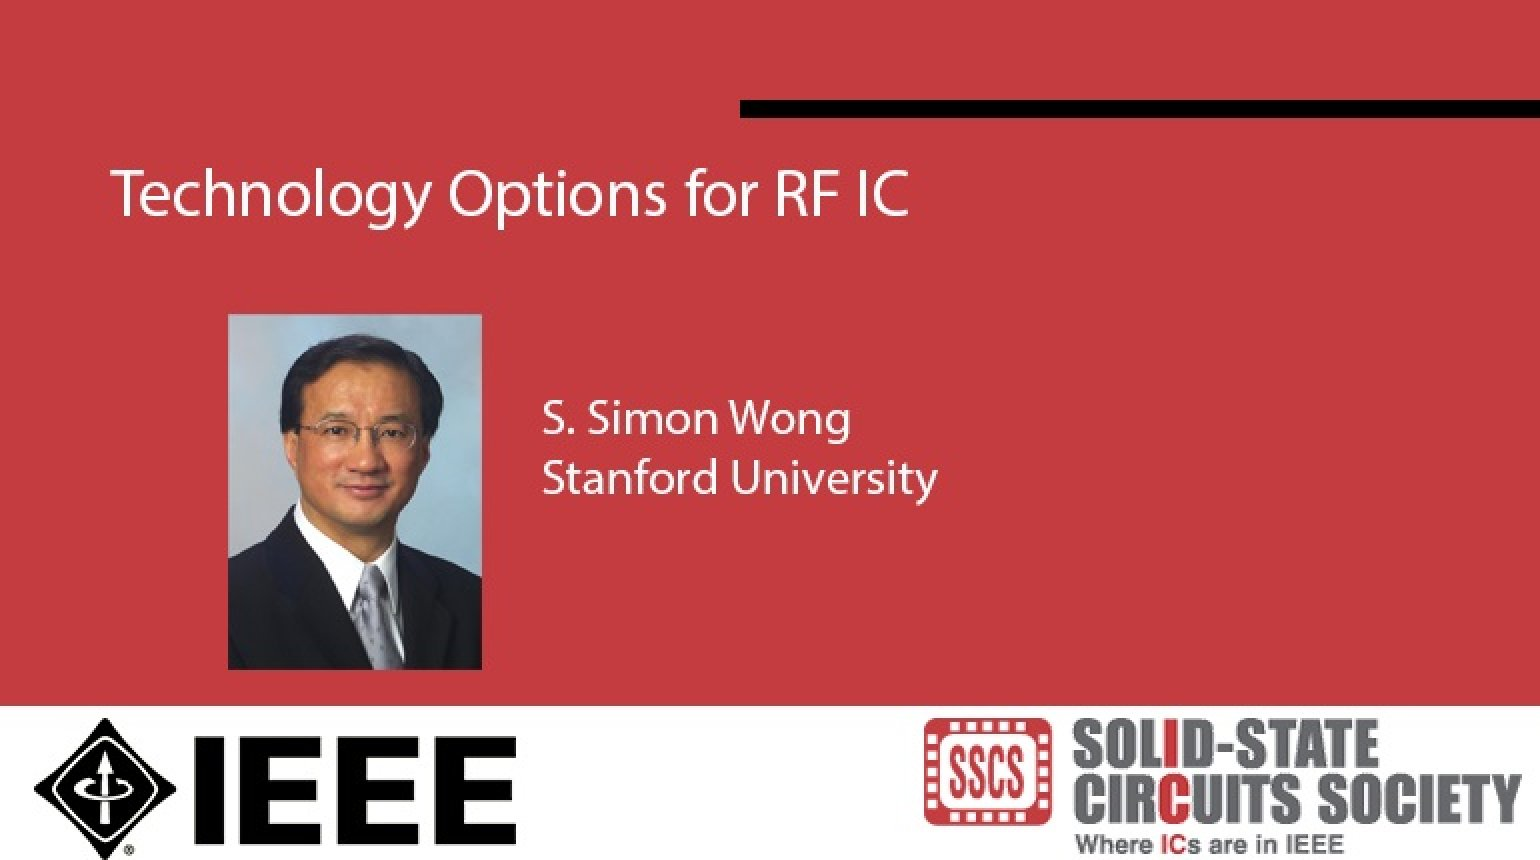 Technology Options for RF IC Video